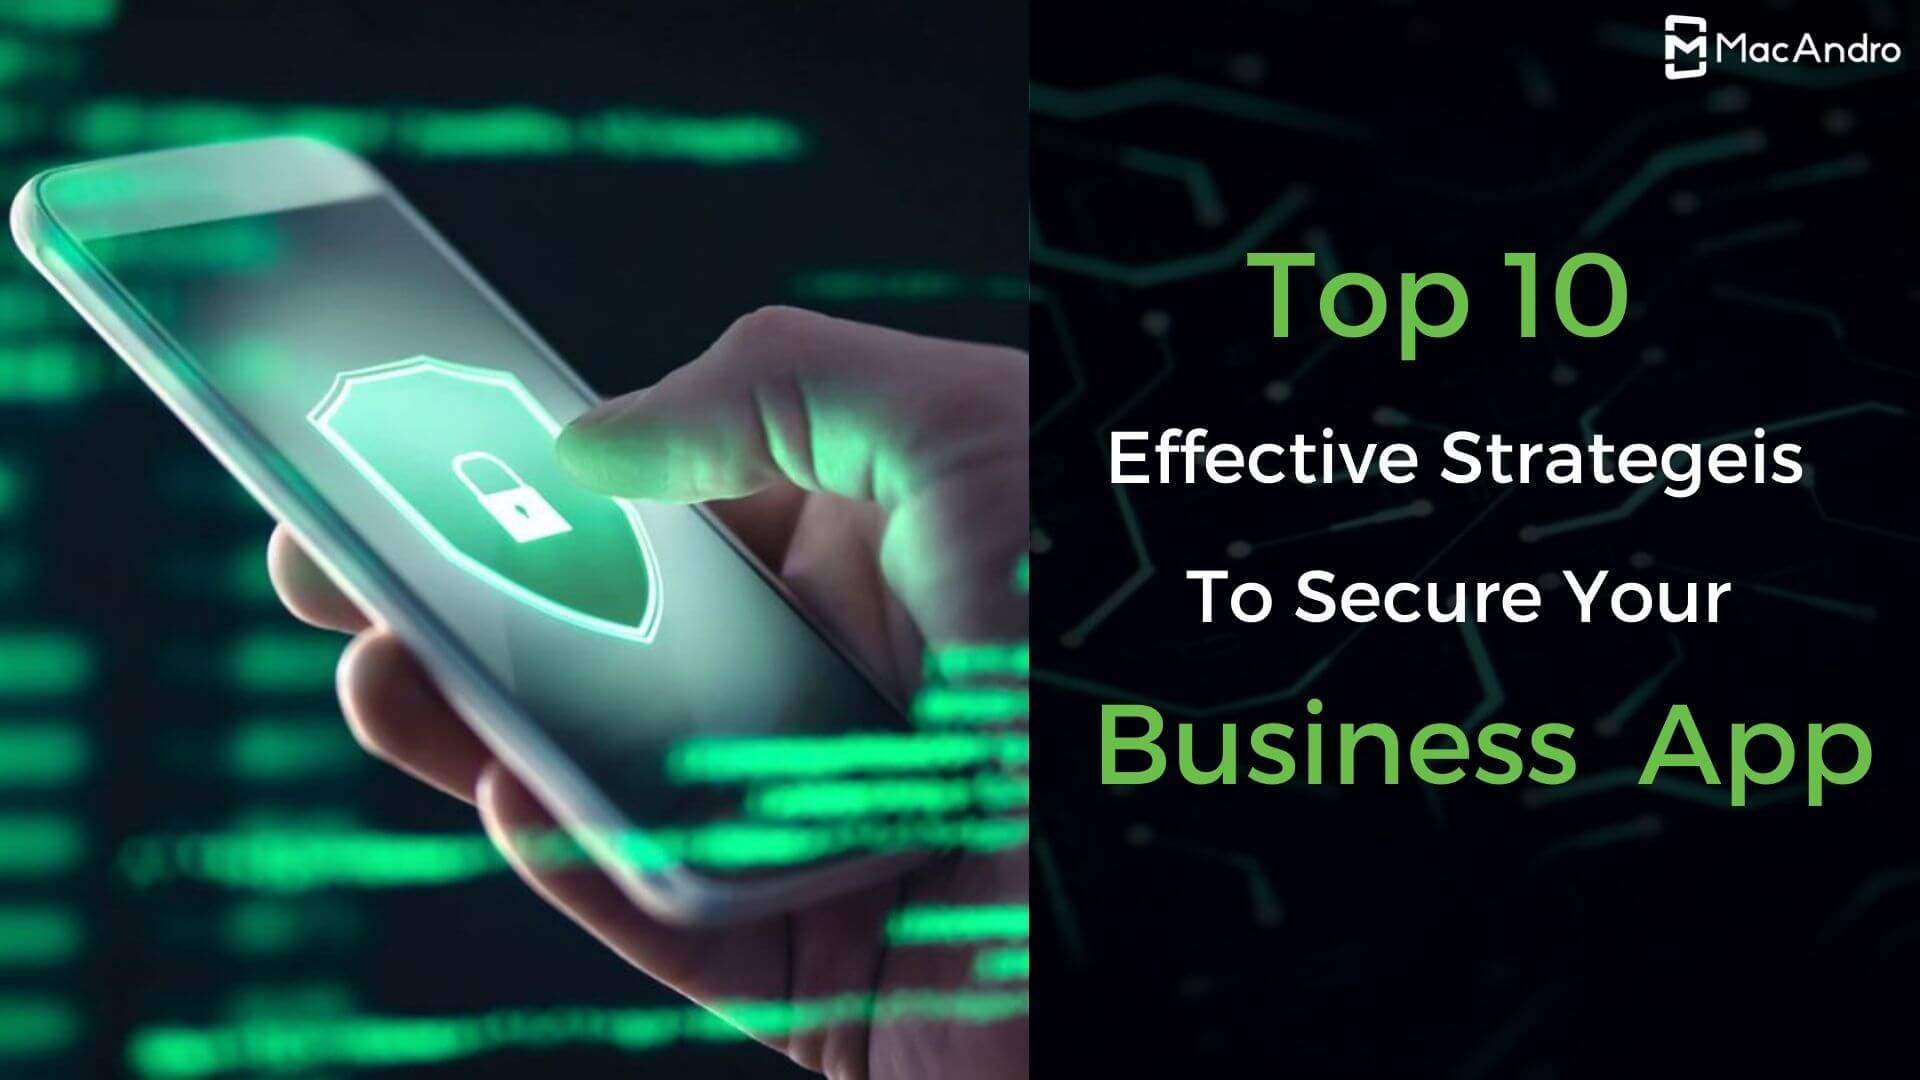 Top 10 Protective Ways To Secure Your Enterprise App